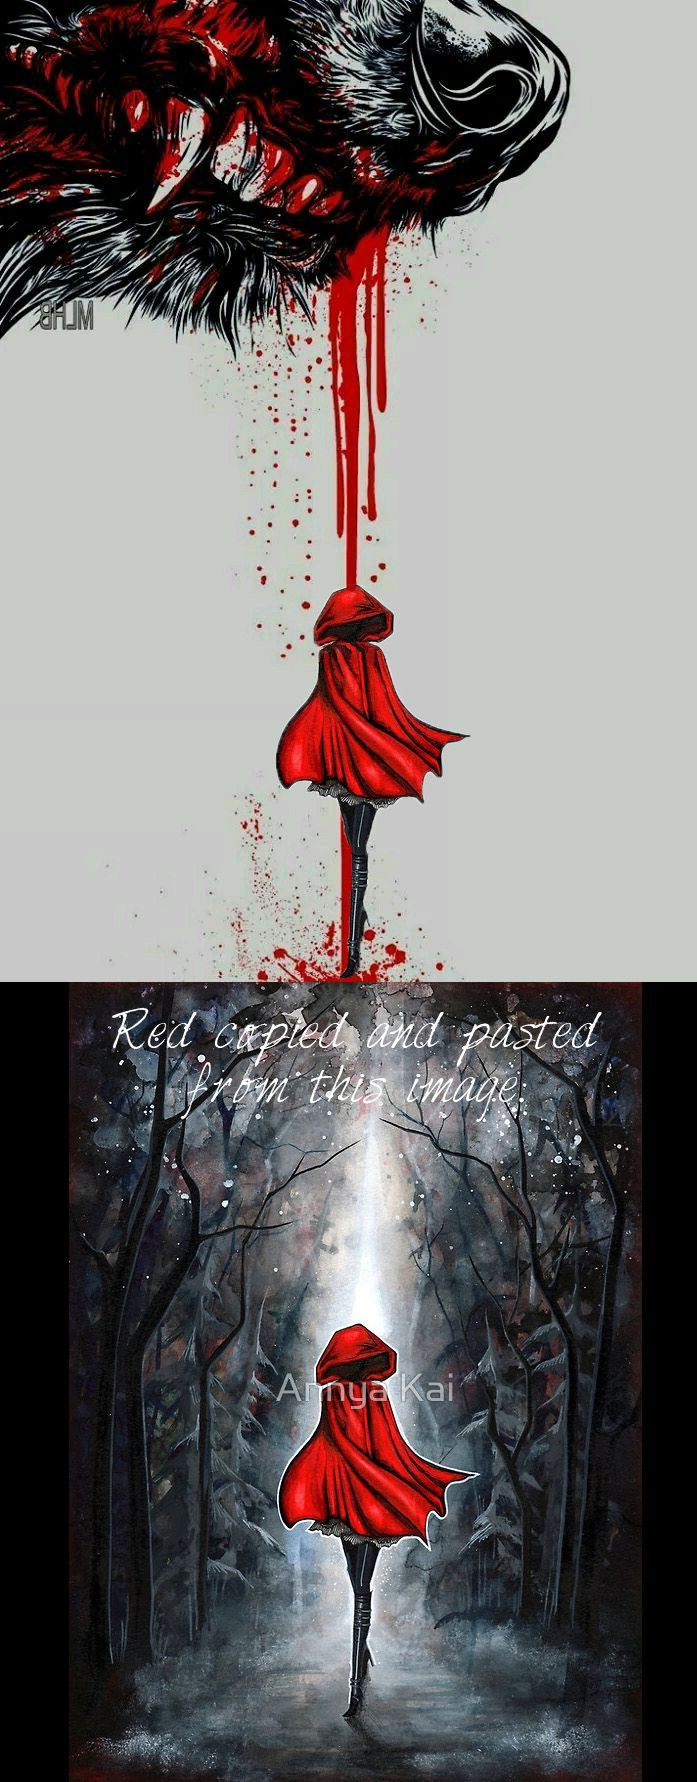 Red Riding Hood tattoo. This is just a mockup made from two images I found on google. I love the idea of the blood dropping to 'become' Red.